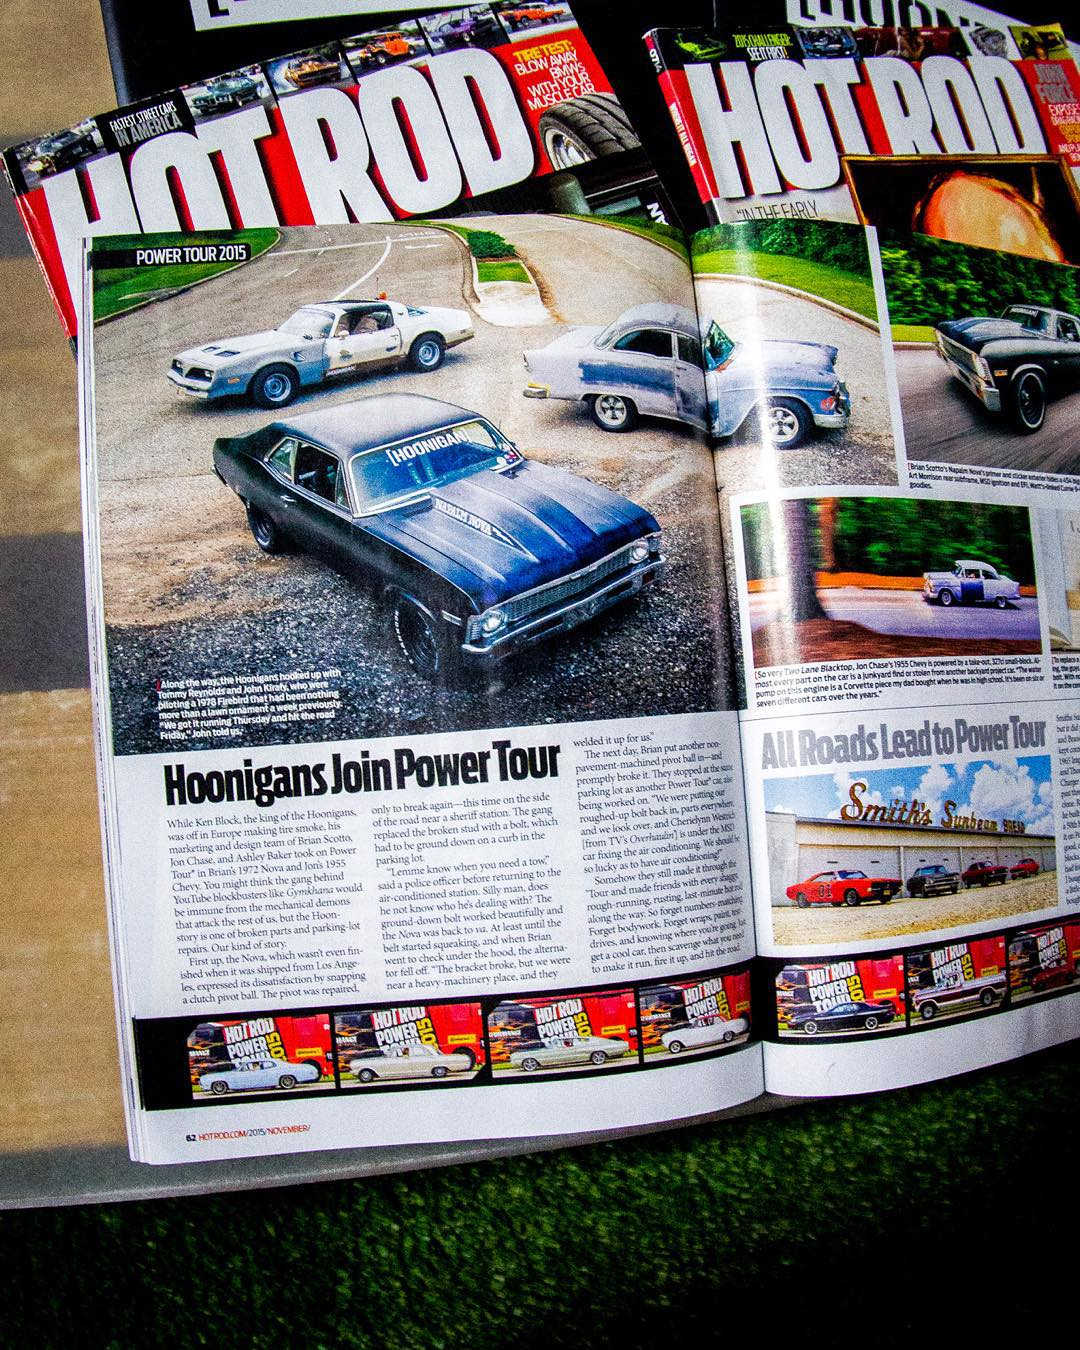 Brand Director @brianscotto and Art Director @jchase7452 sitting tough in the latest issue of @HotRodMagazine, go grab a copy while you can! #NapalmNova #tri5byfire